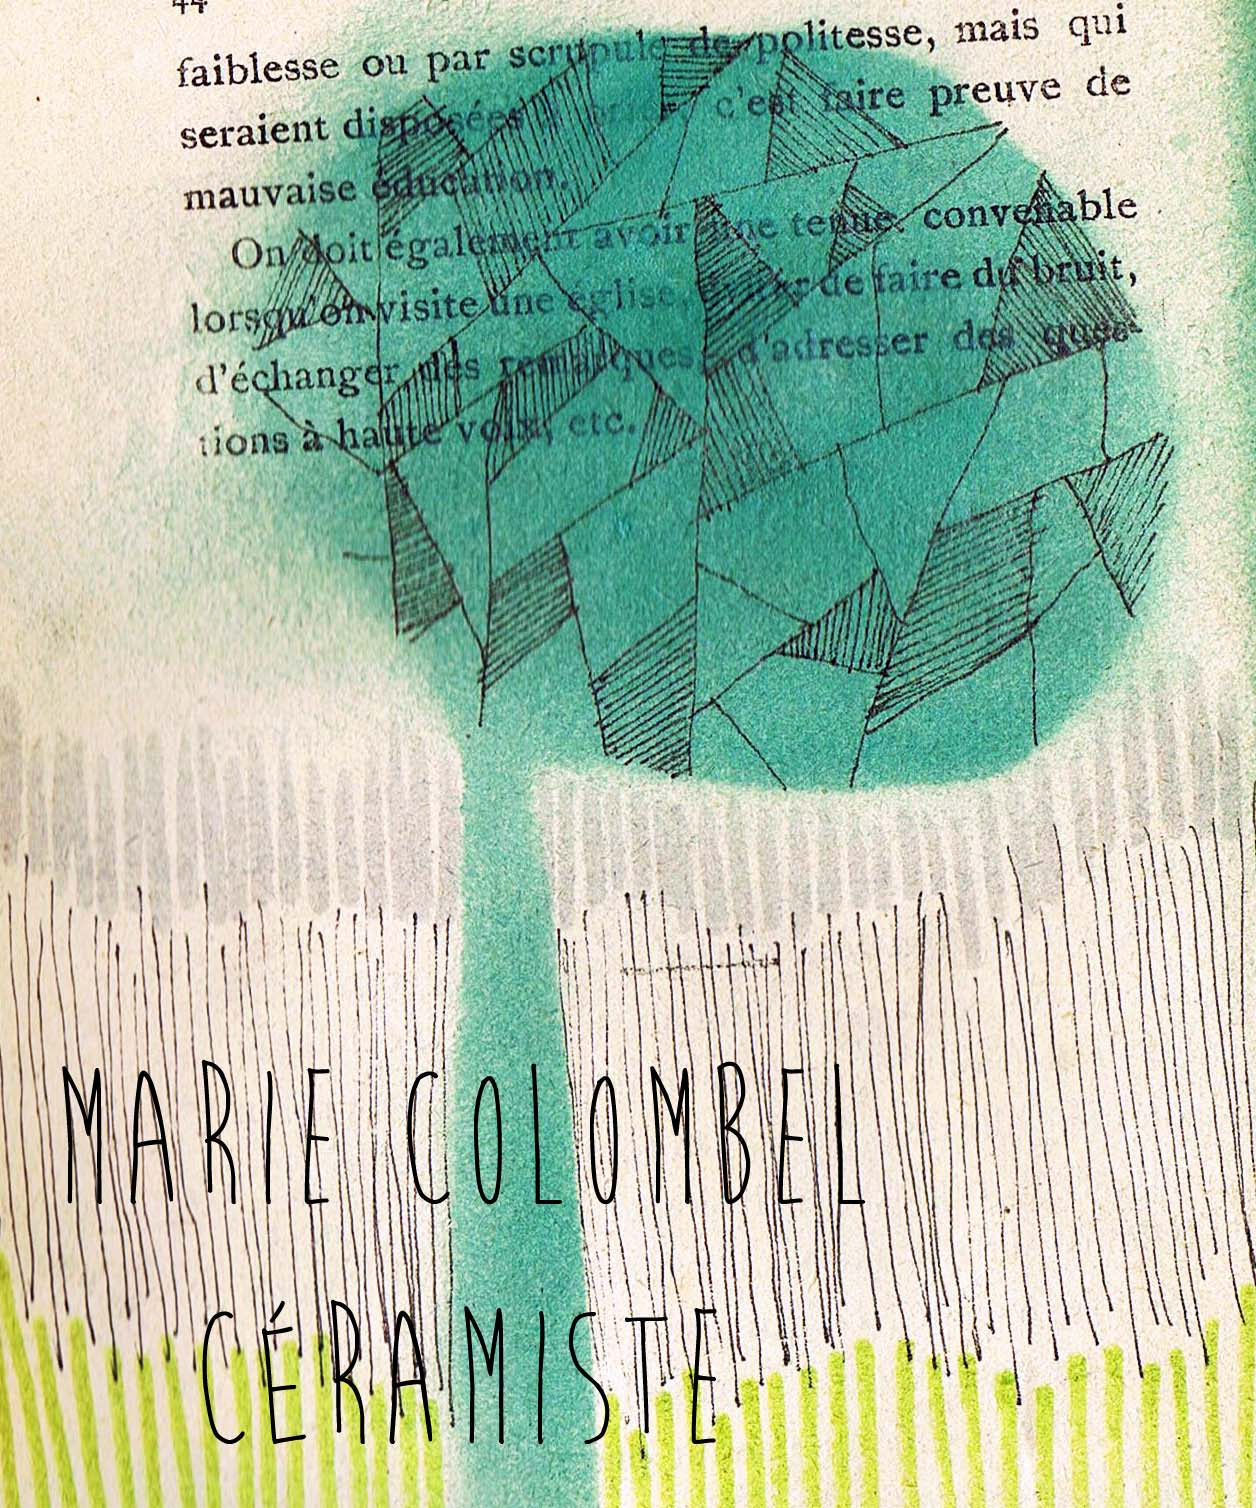 Marie Colombel